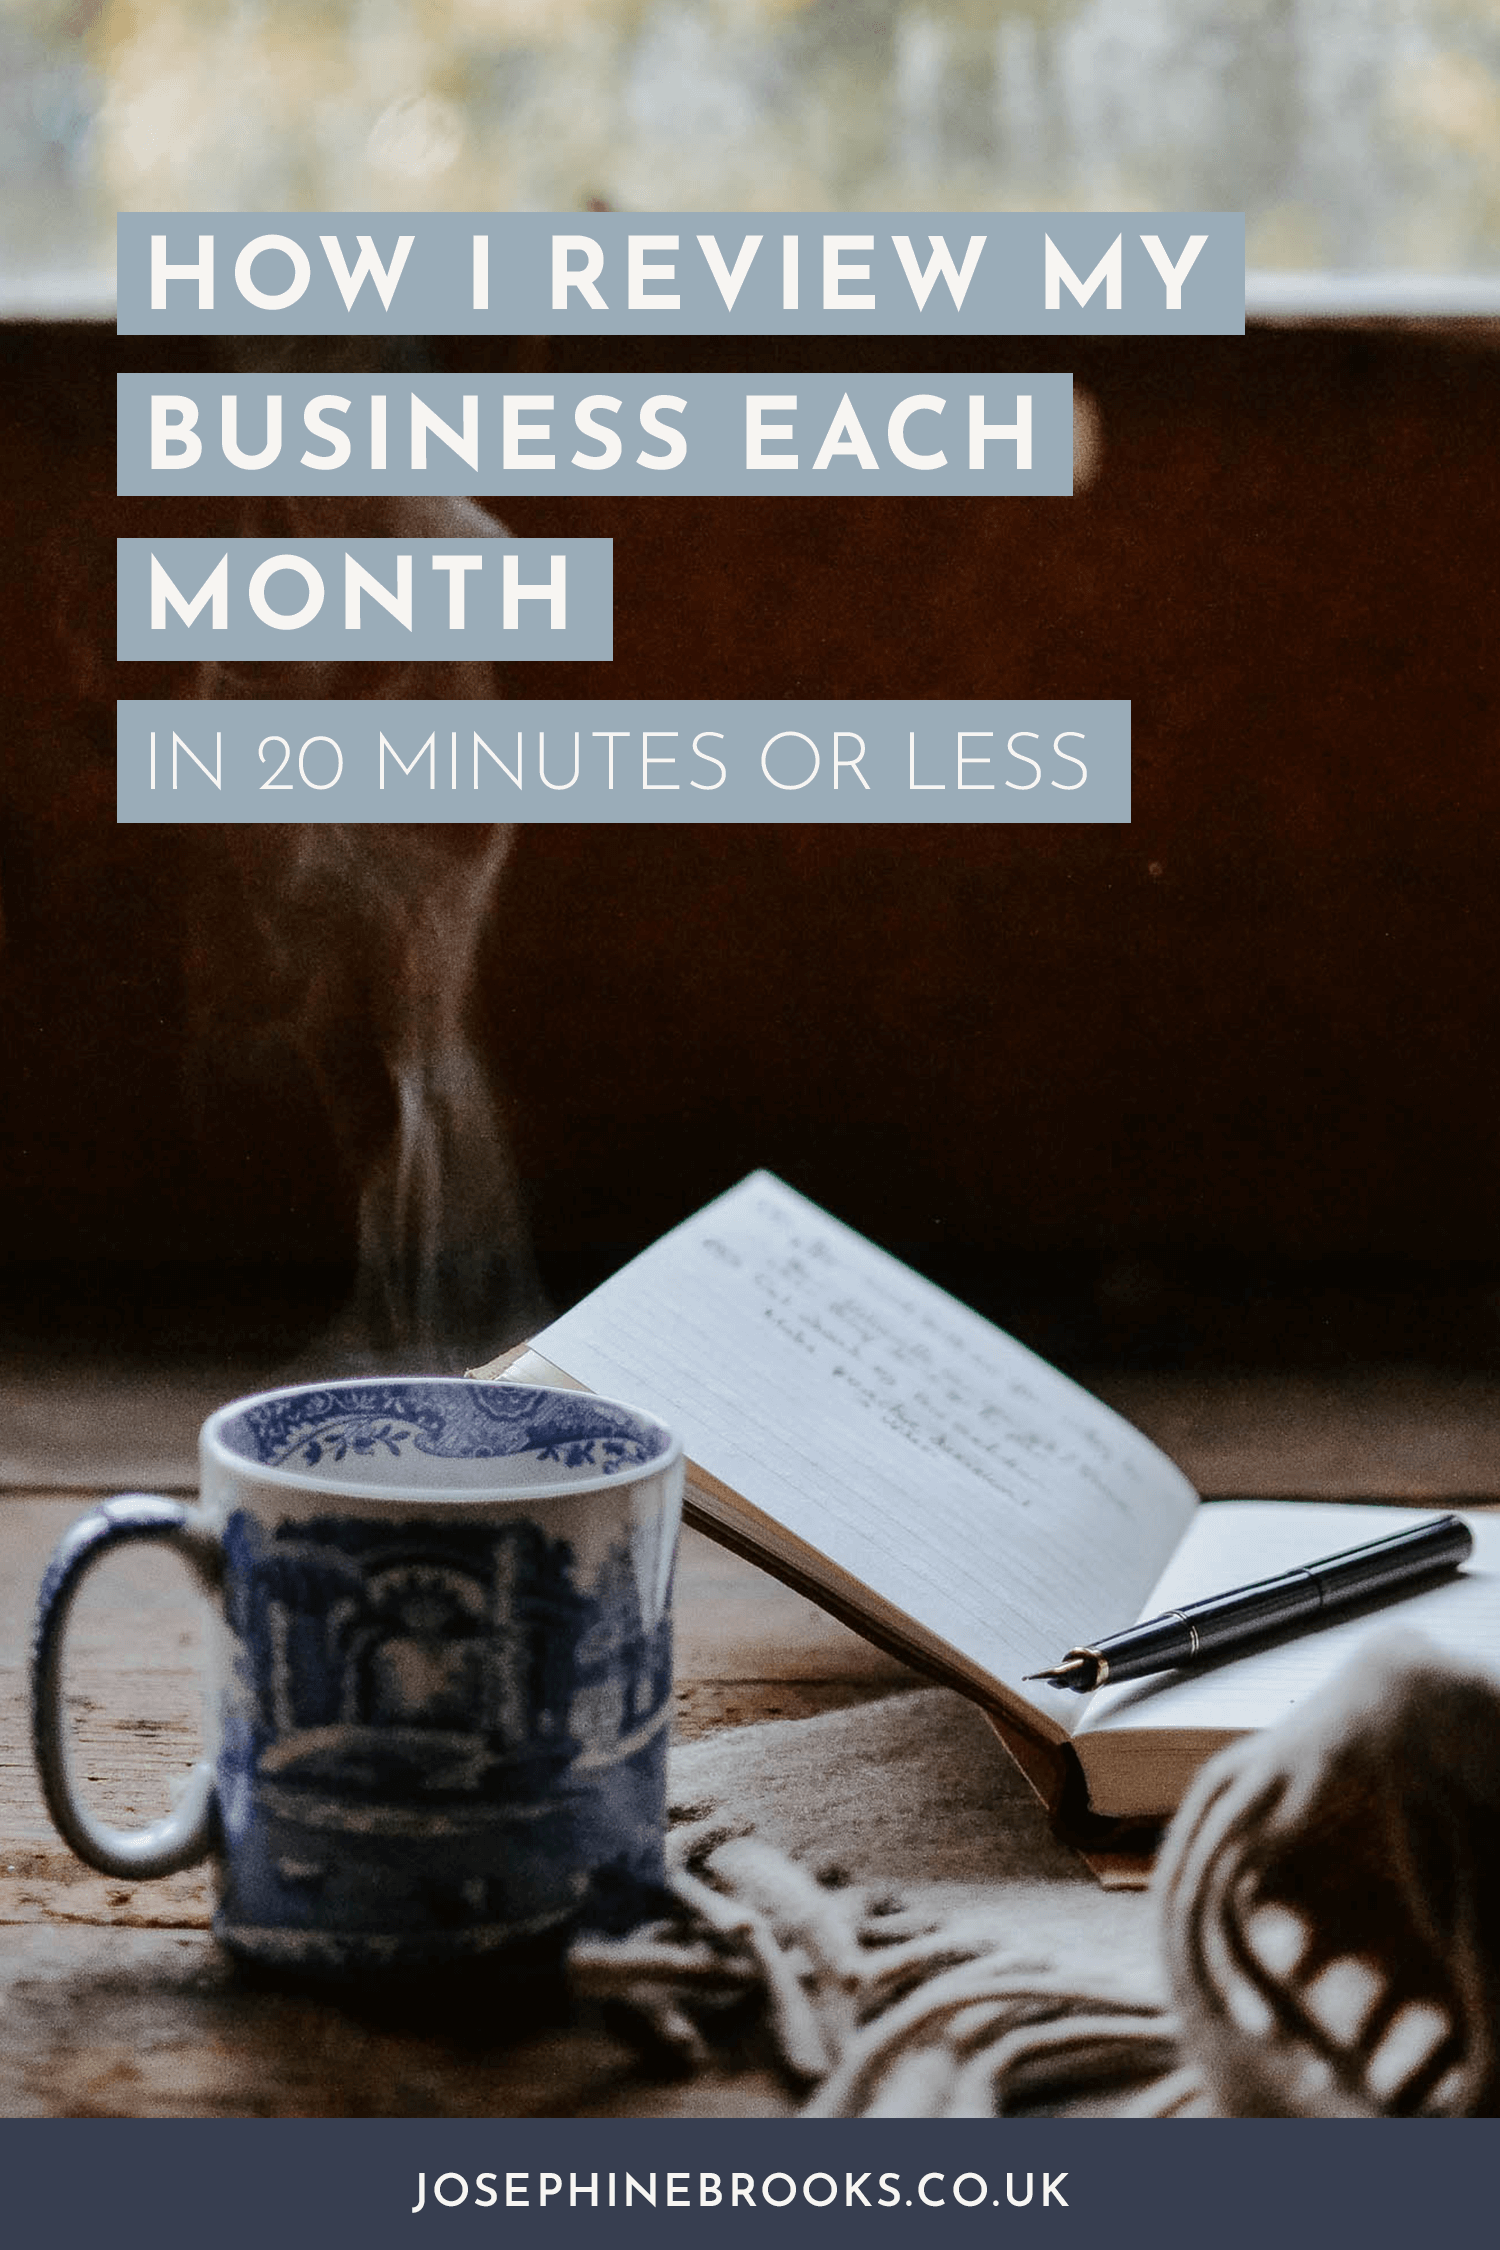 How I review my business each month in 20 minutes or less - Josephine Brooks [VIDEO]